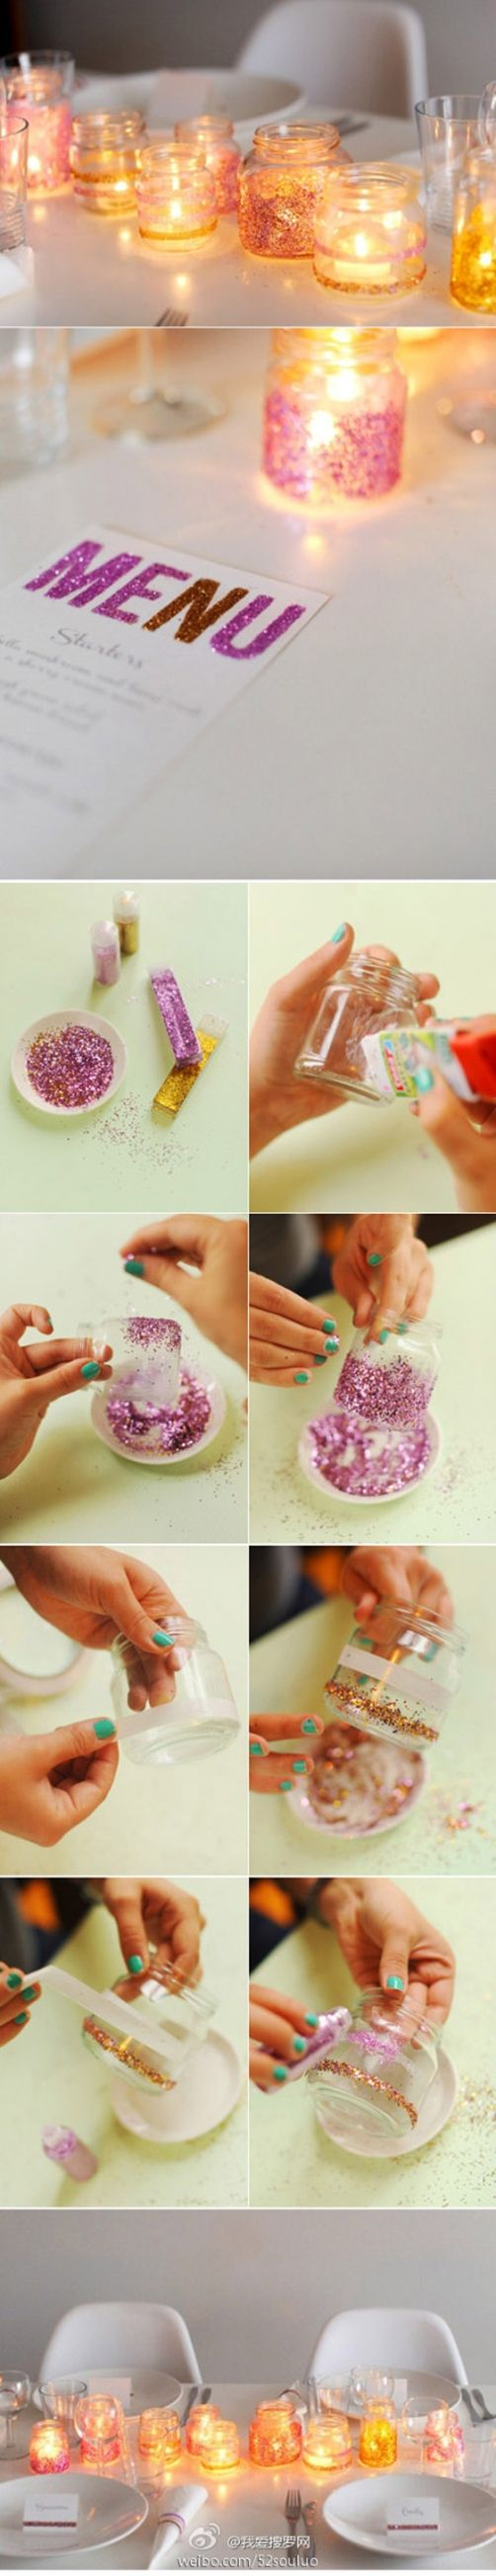 30 DIY Creative Ideas That Can Inspire You